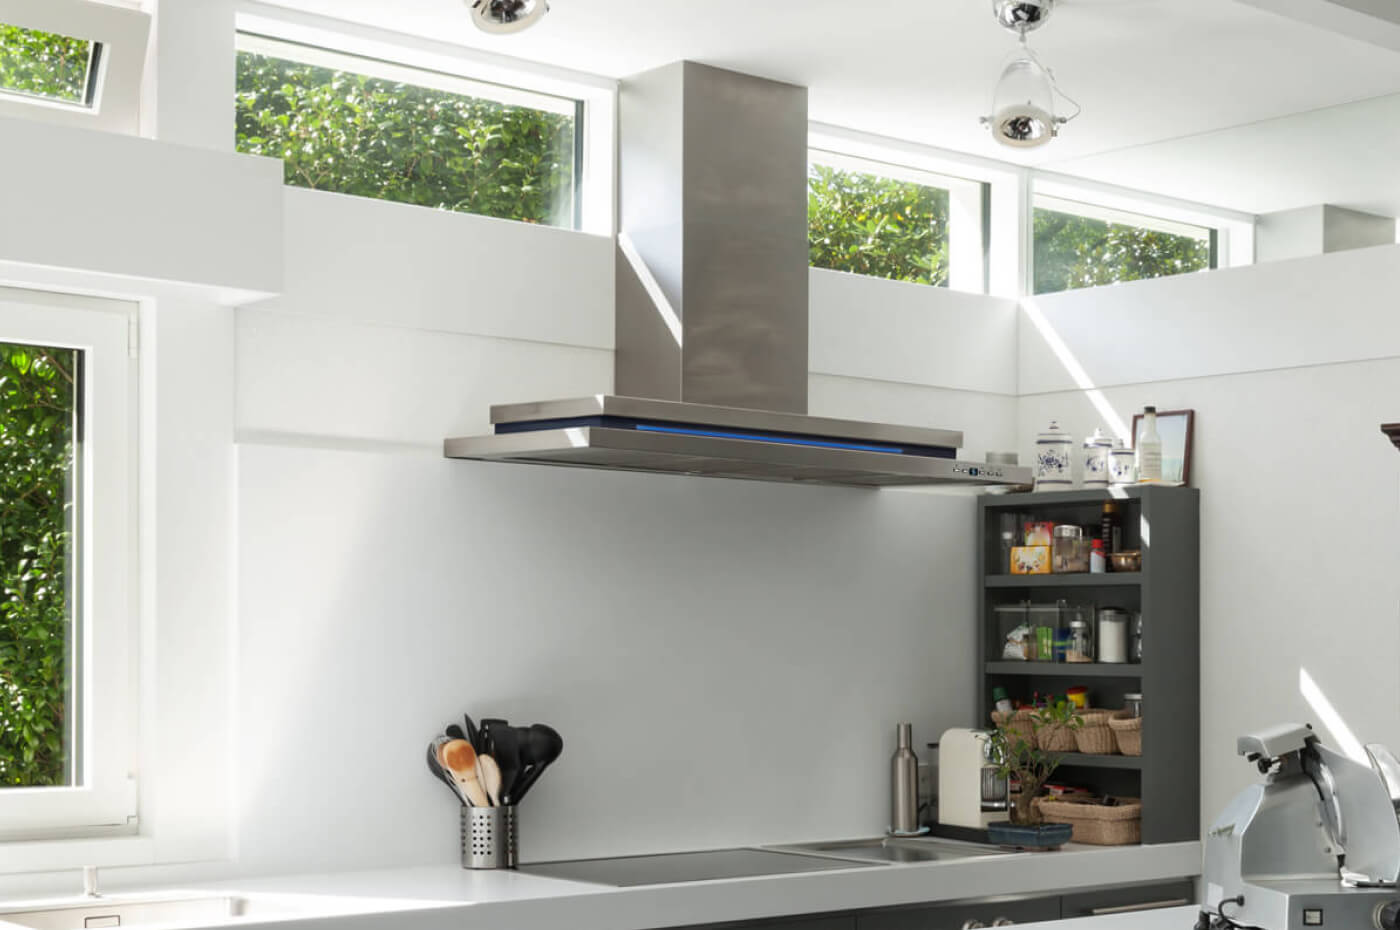 Wallmount Rangehood in Kitchen